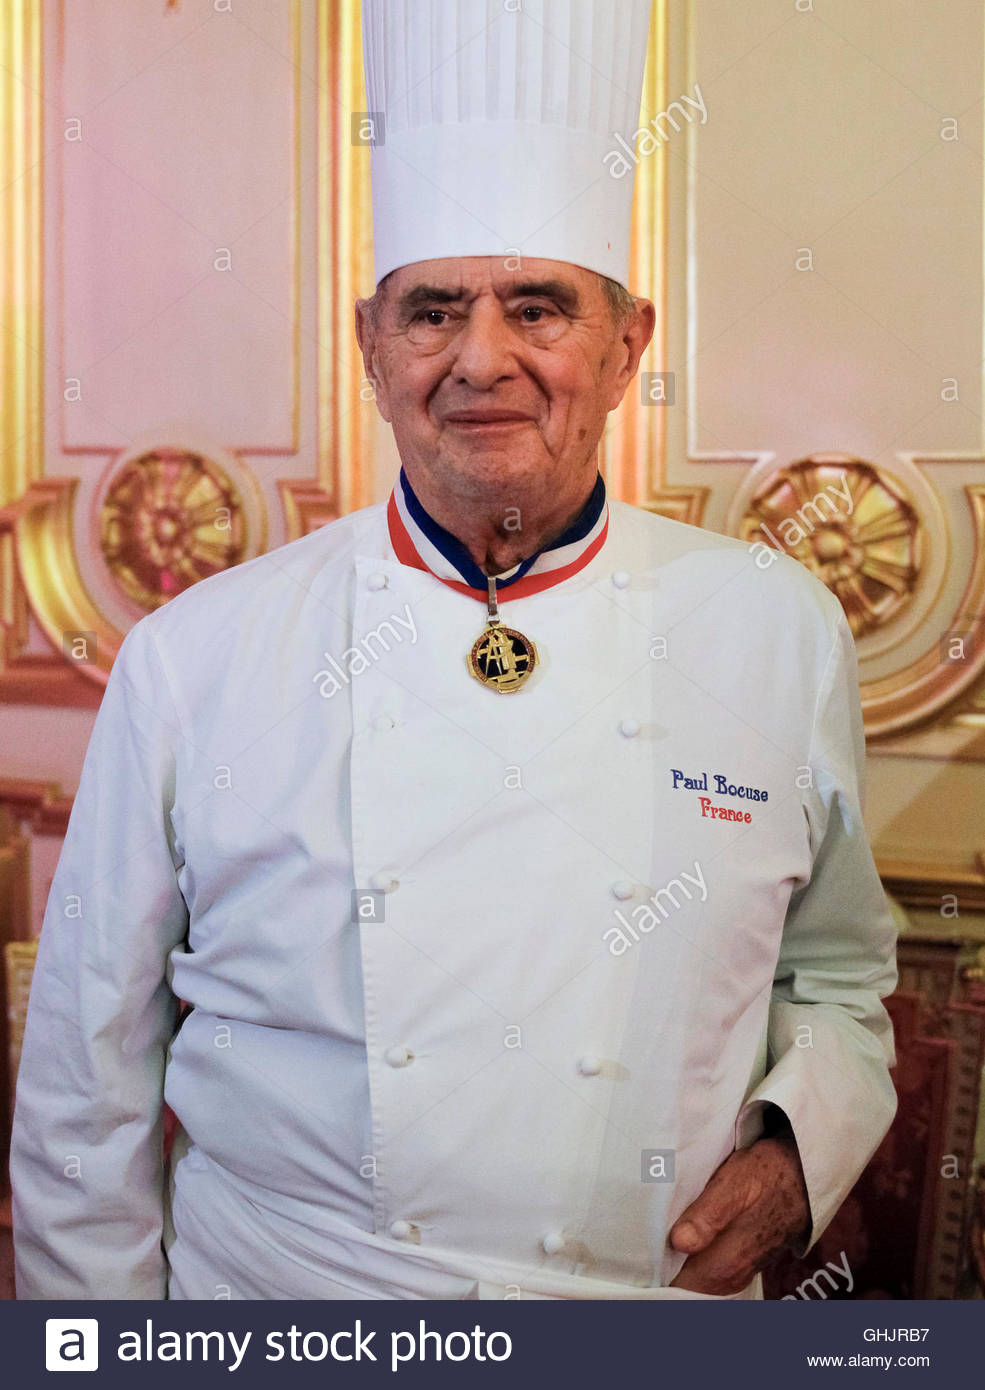 famous french chef paul bocuse 84 poses in lyon 39 s town. Black Bedroom Furniture Sets. Home Design Ideas